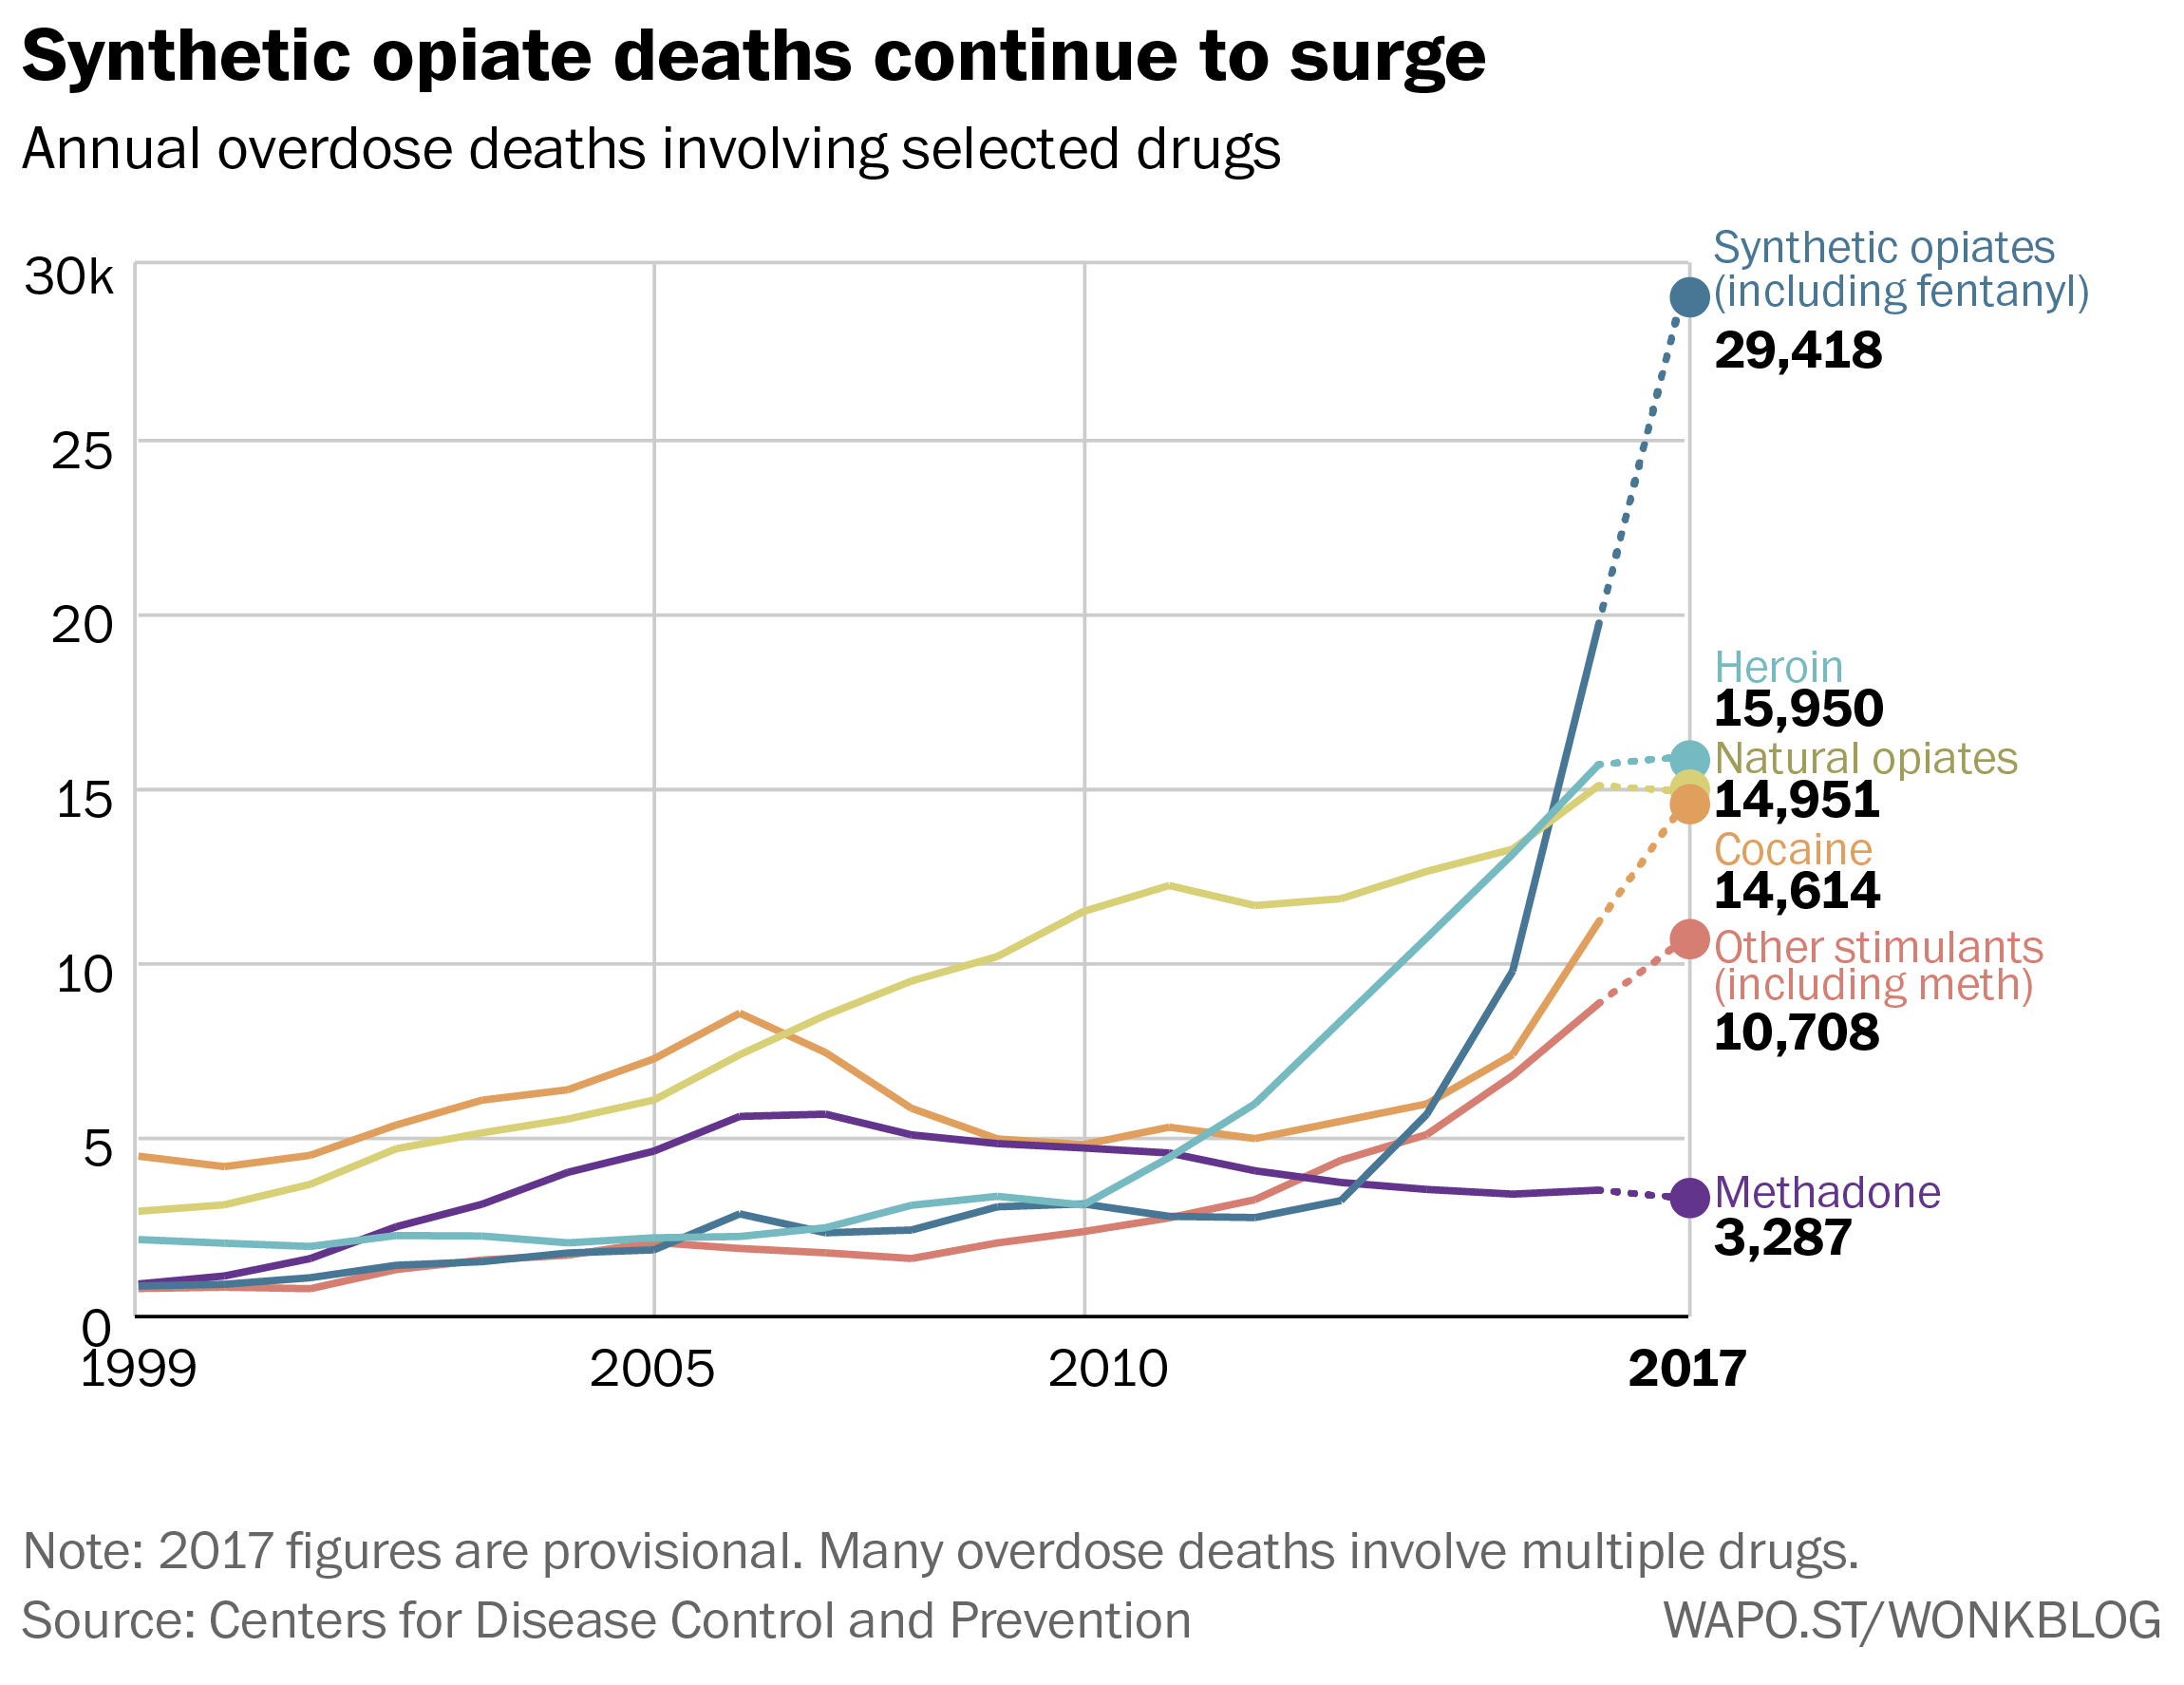 Fentanyl tops drug overdose death rates